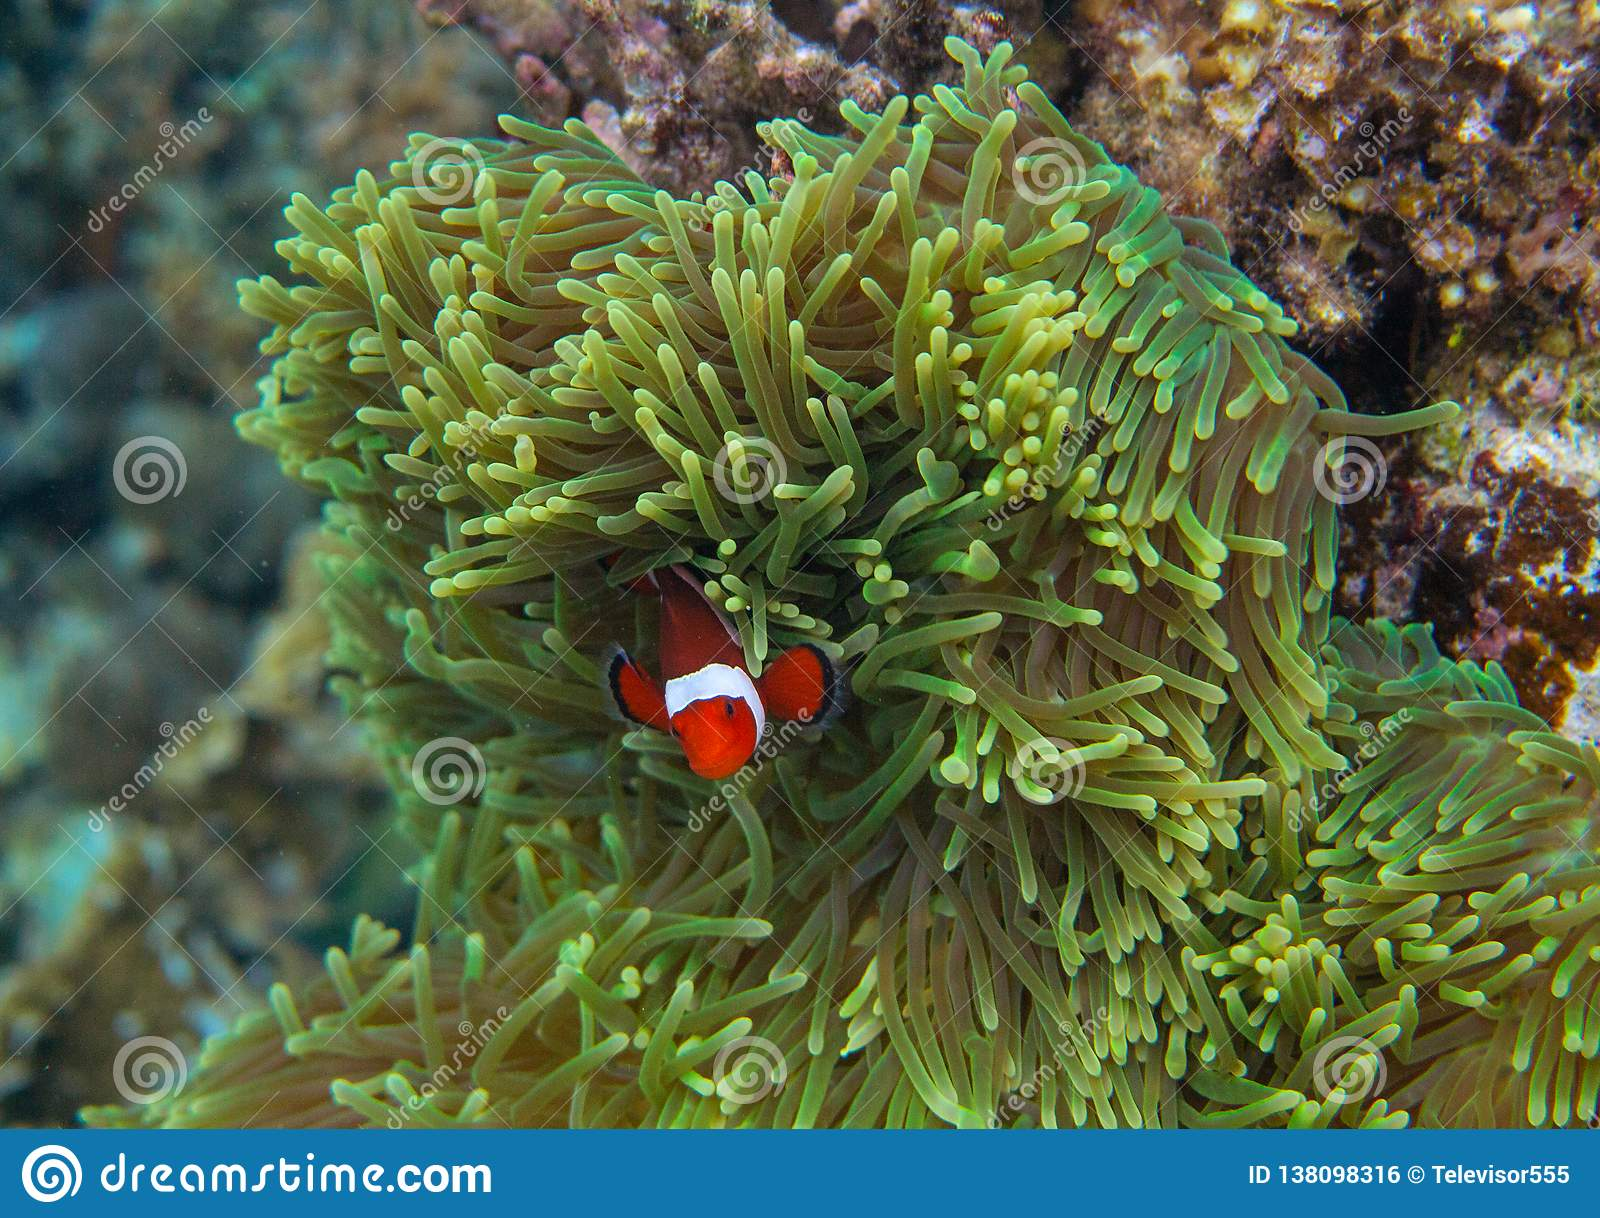 Orange clownfish in actinia. Coral reef underwater photo. Clown fish in anemone. Tropical seashore snorkeling or diving